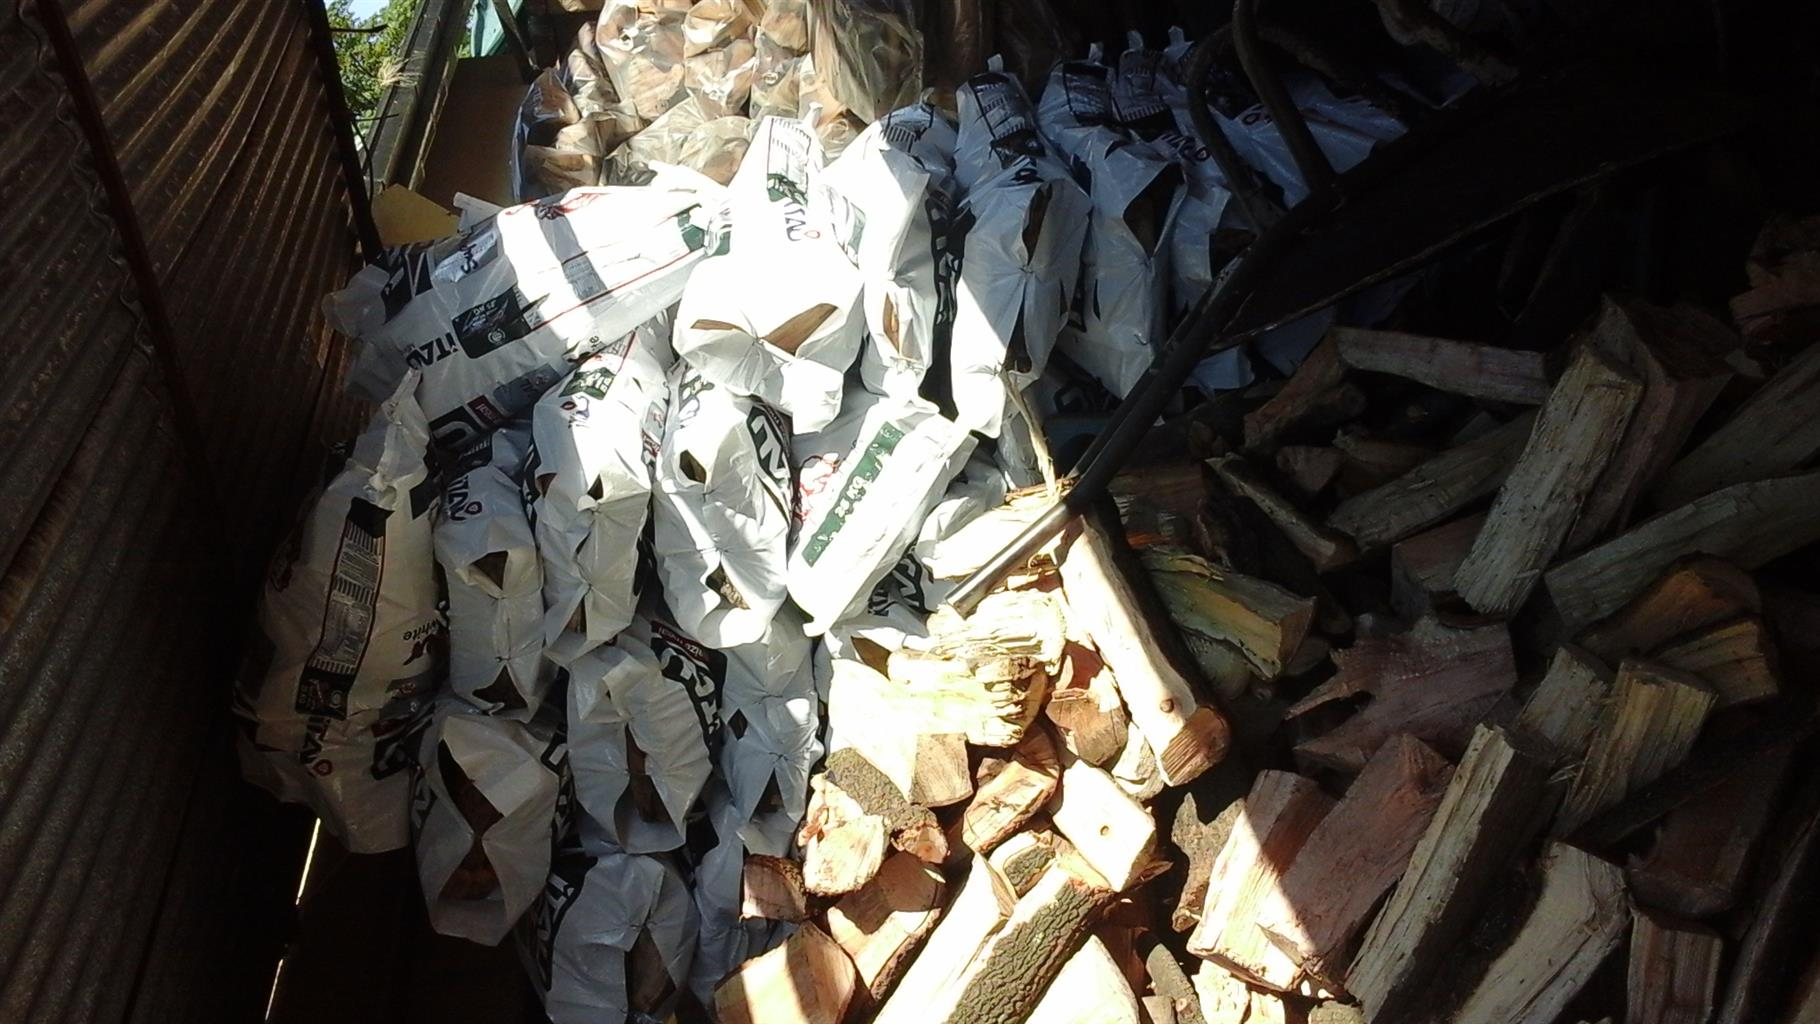 FIREWOOD BIG  BAGS FOR SALE KEMPTON PARK . 100% DRY